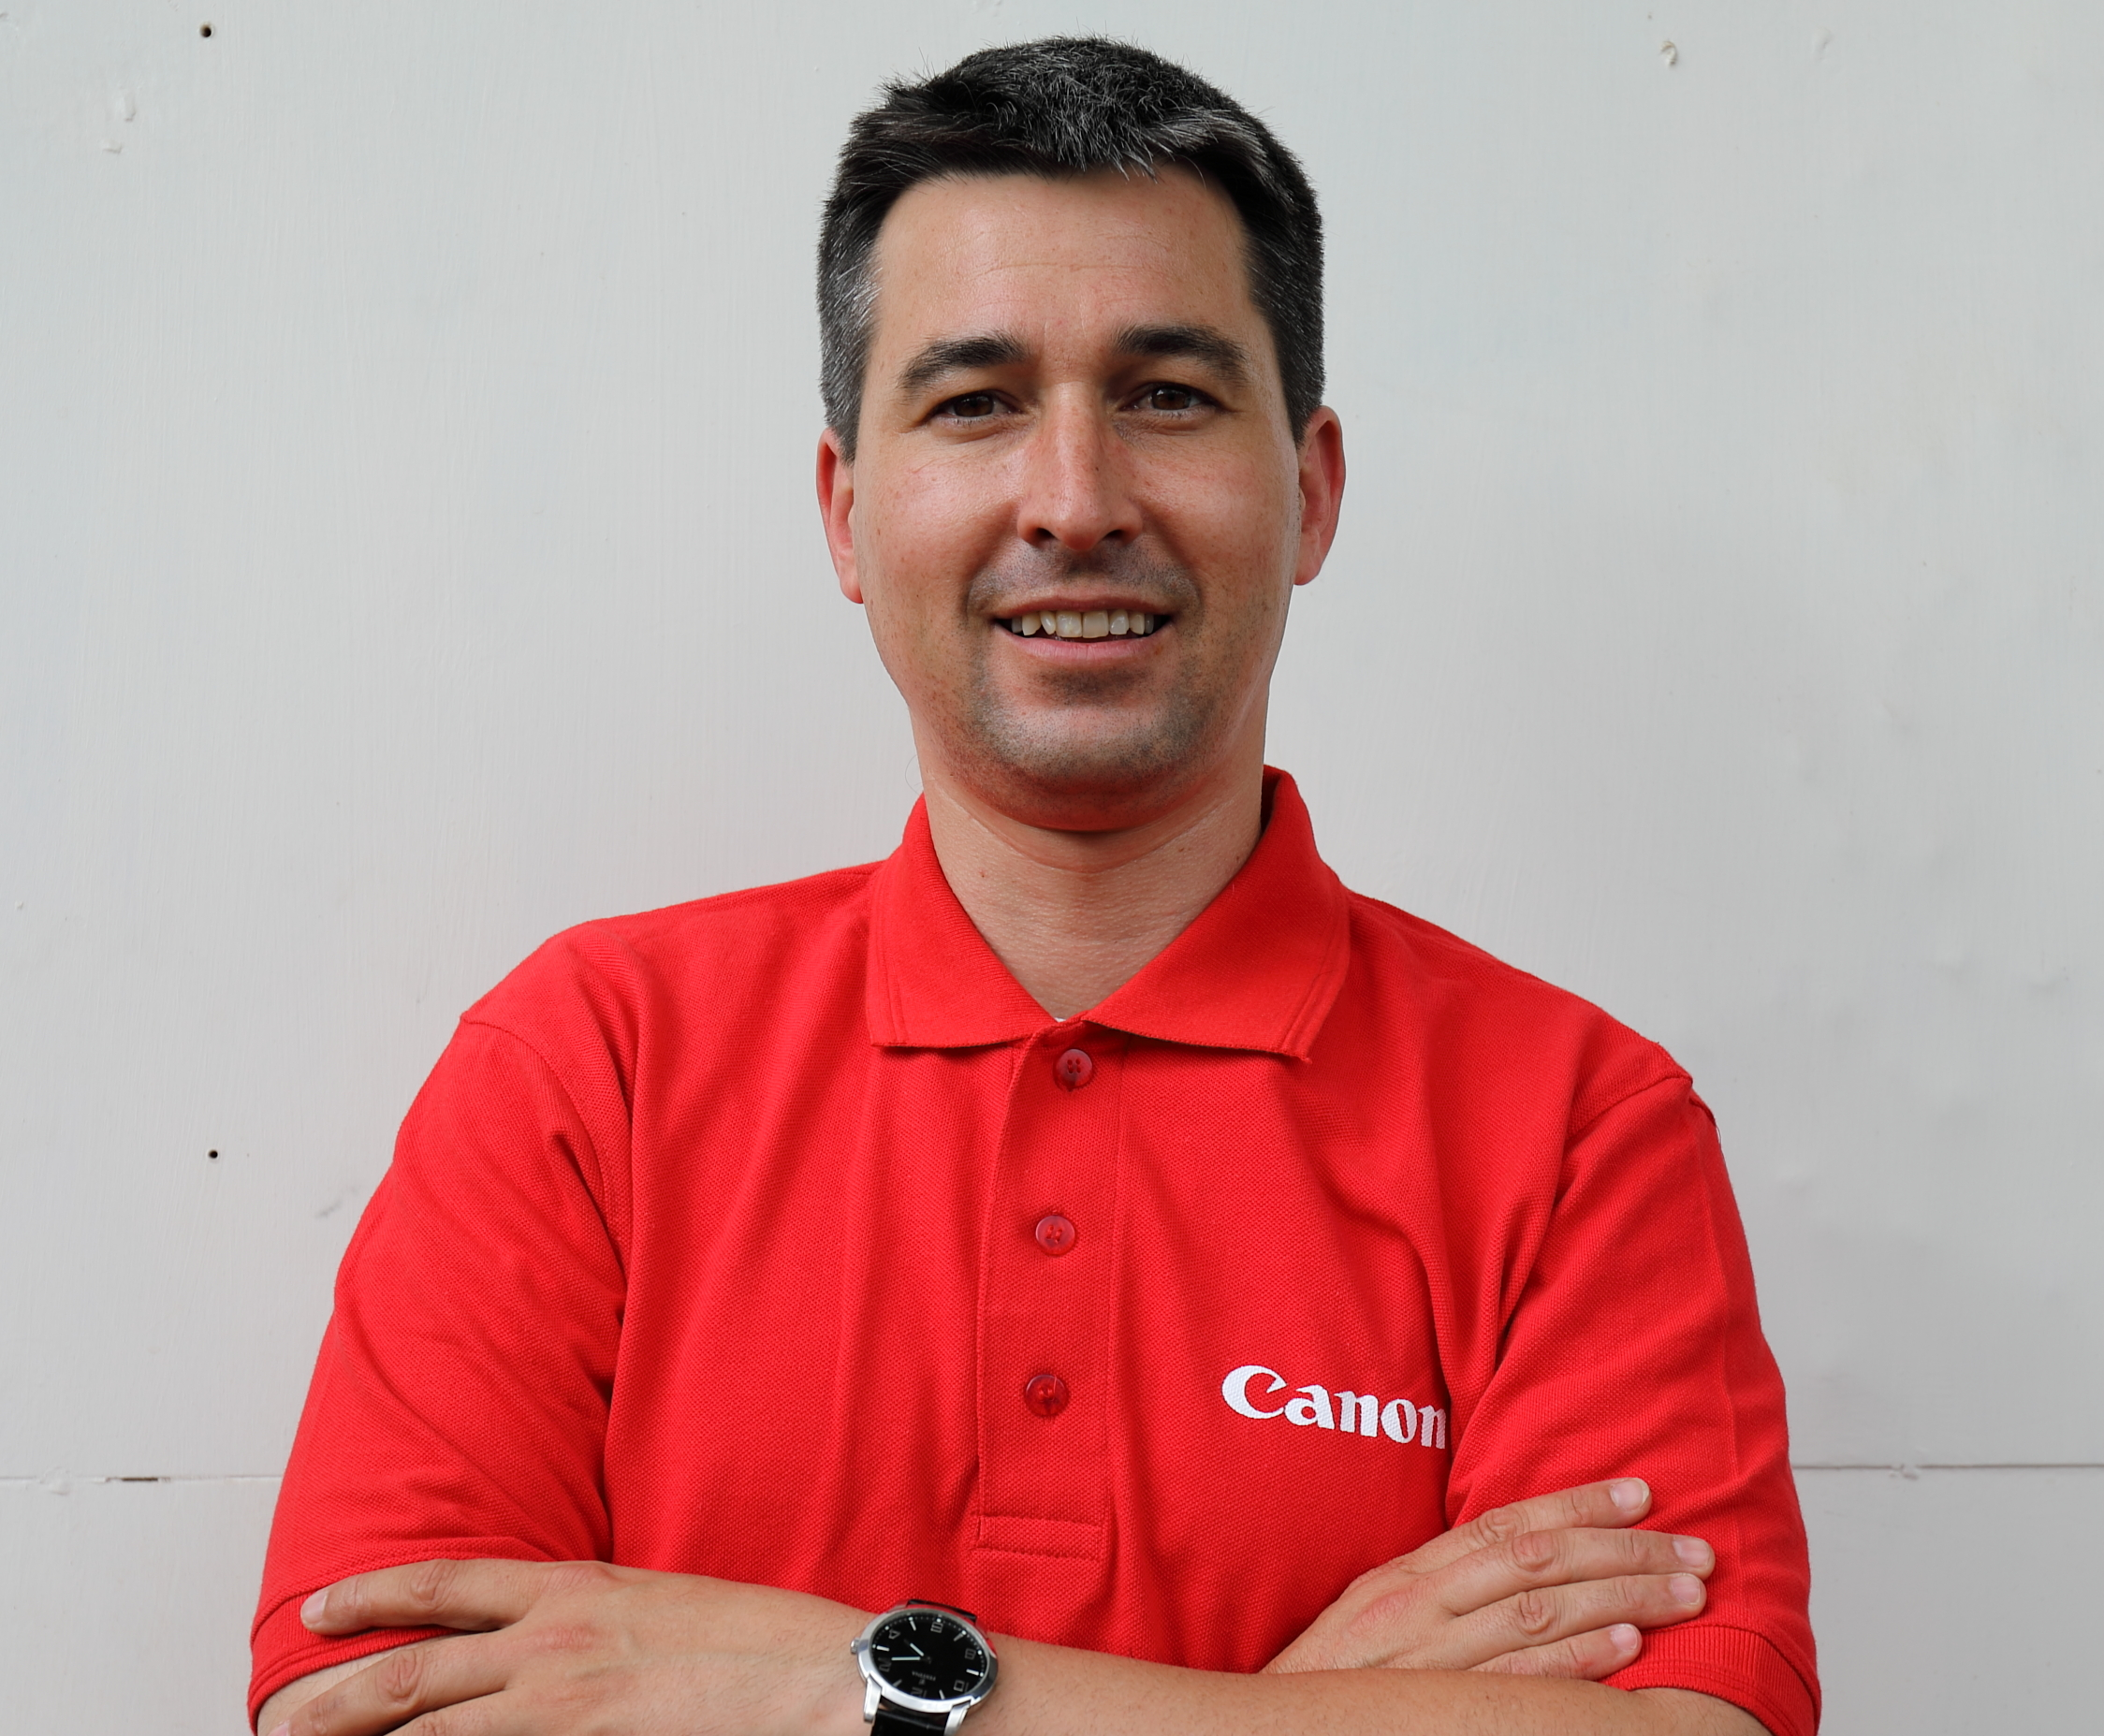 CANON – Jean Mazel – Kenya – Morocco a strong equation